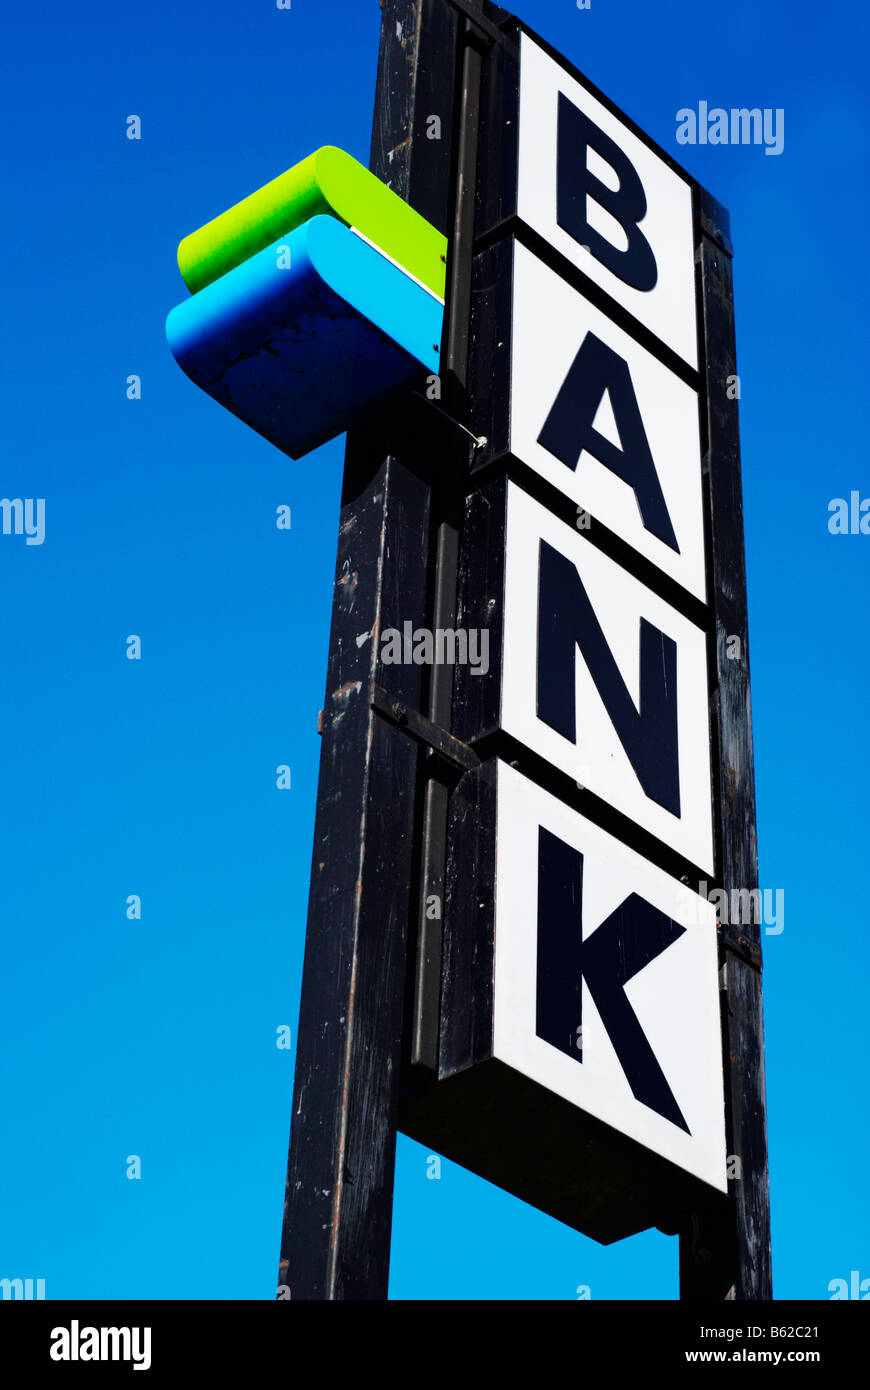 Sign indicating a bank and a cash machine, Austria, Europe - Stock Image